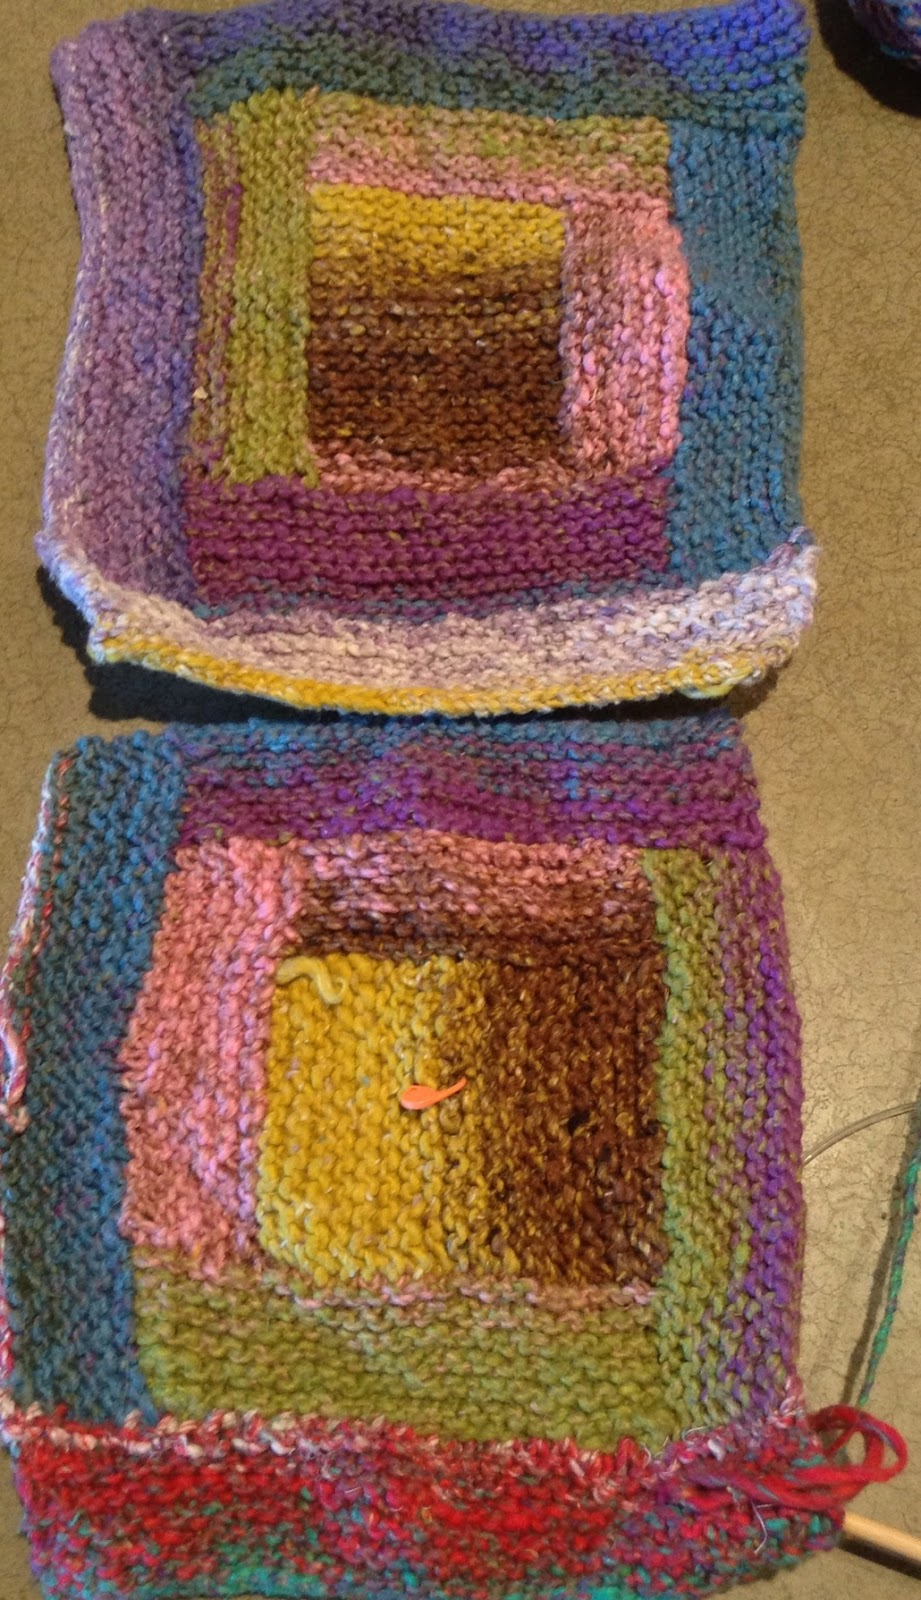 Stitch and Chat: Who decided a crocheted square is a \